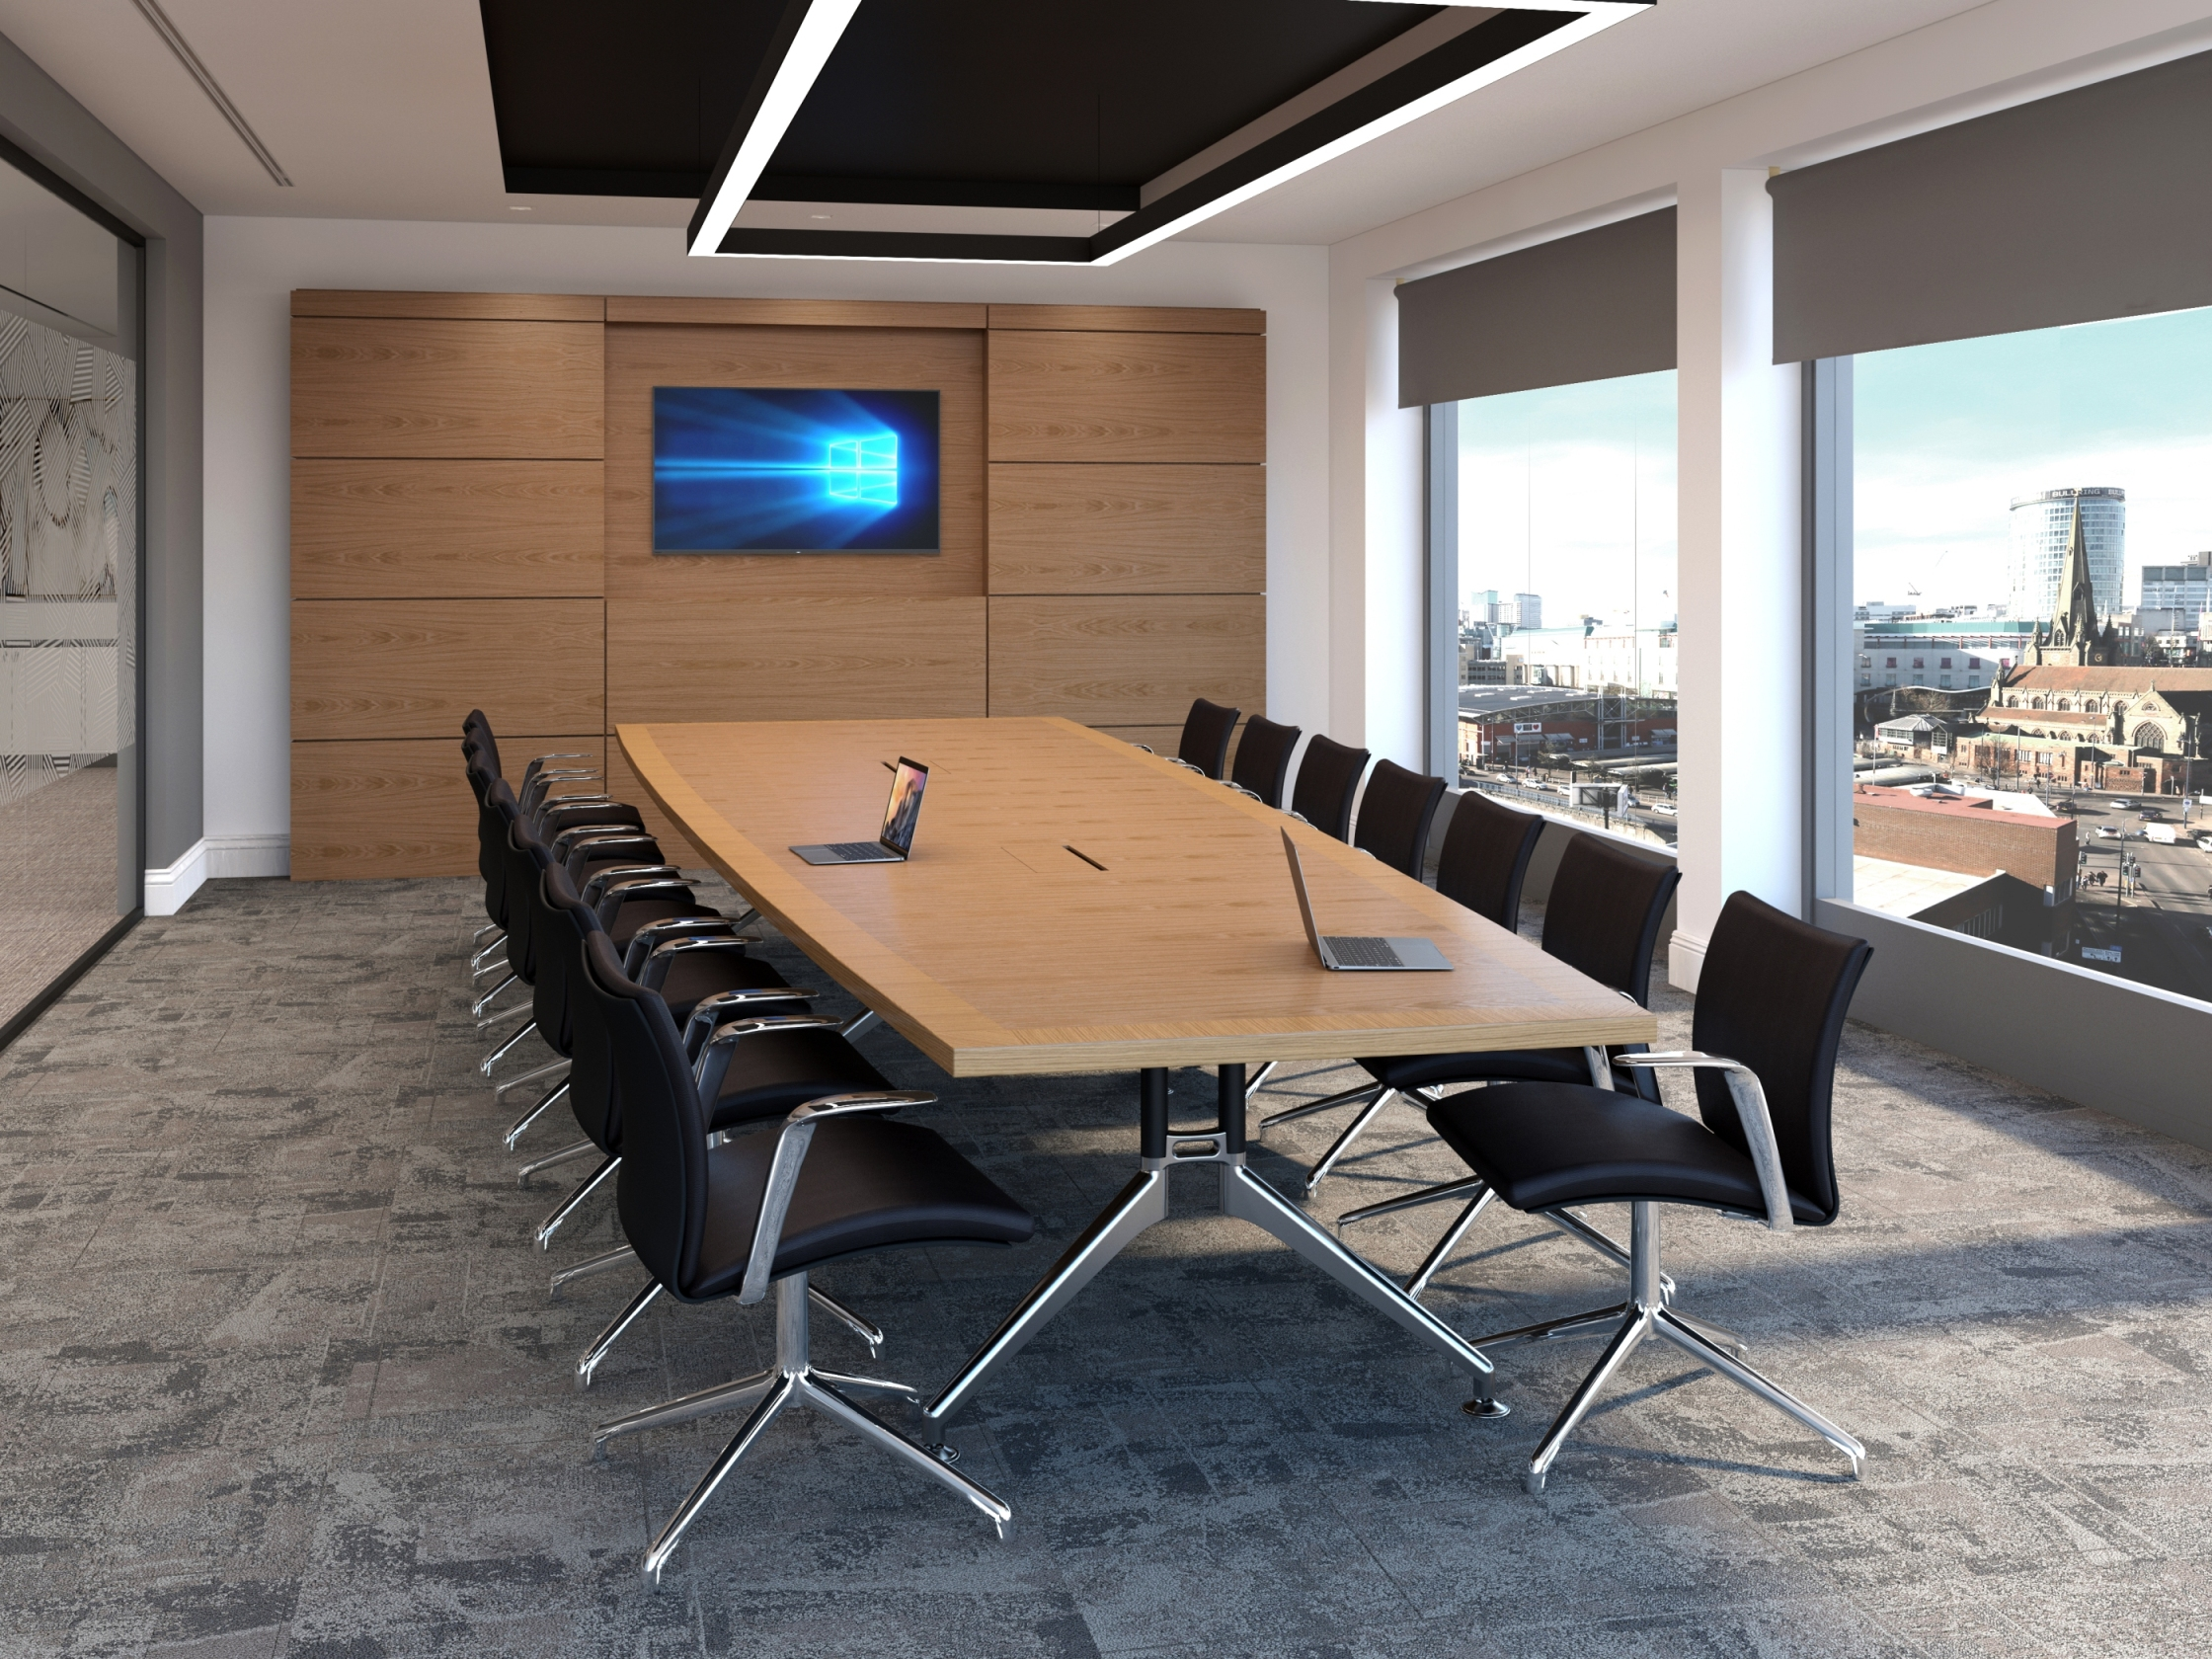 THE IDEAL SOLUTION FOR VIRTUAL & SOCIAL DISTANCED MEETINGS